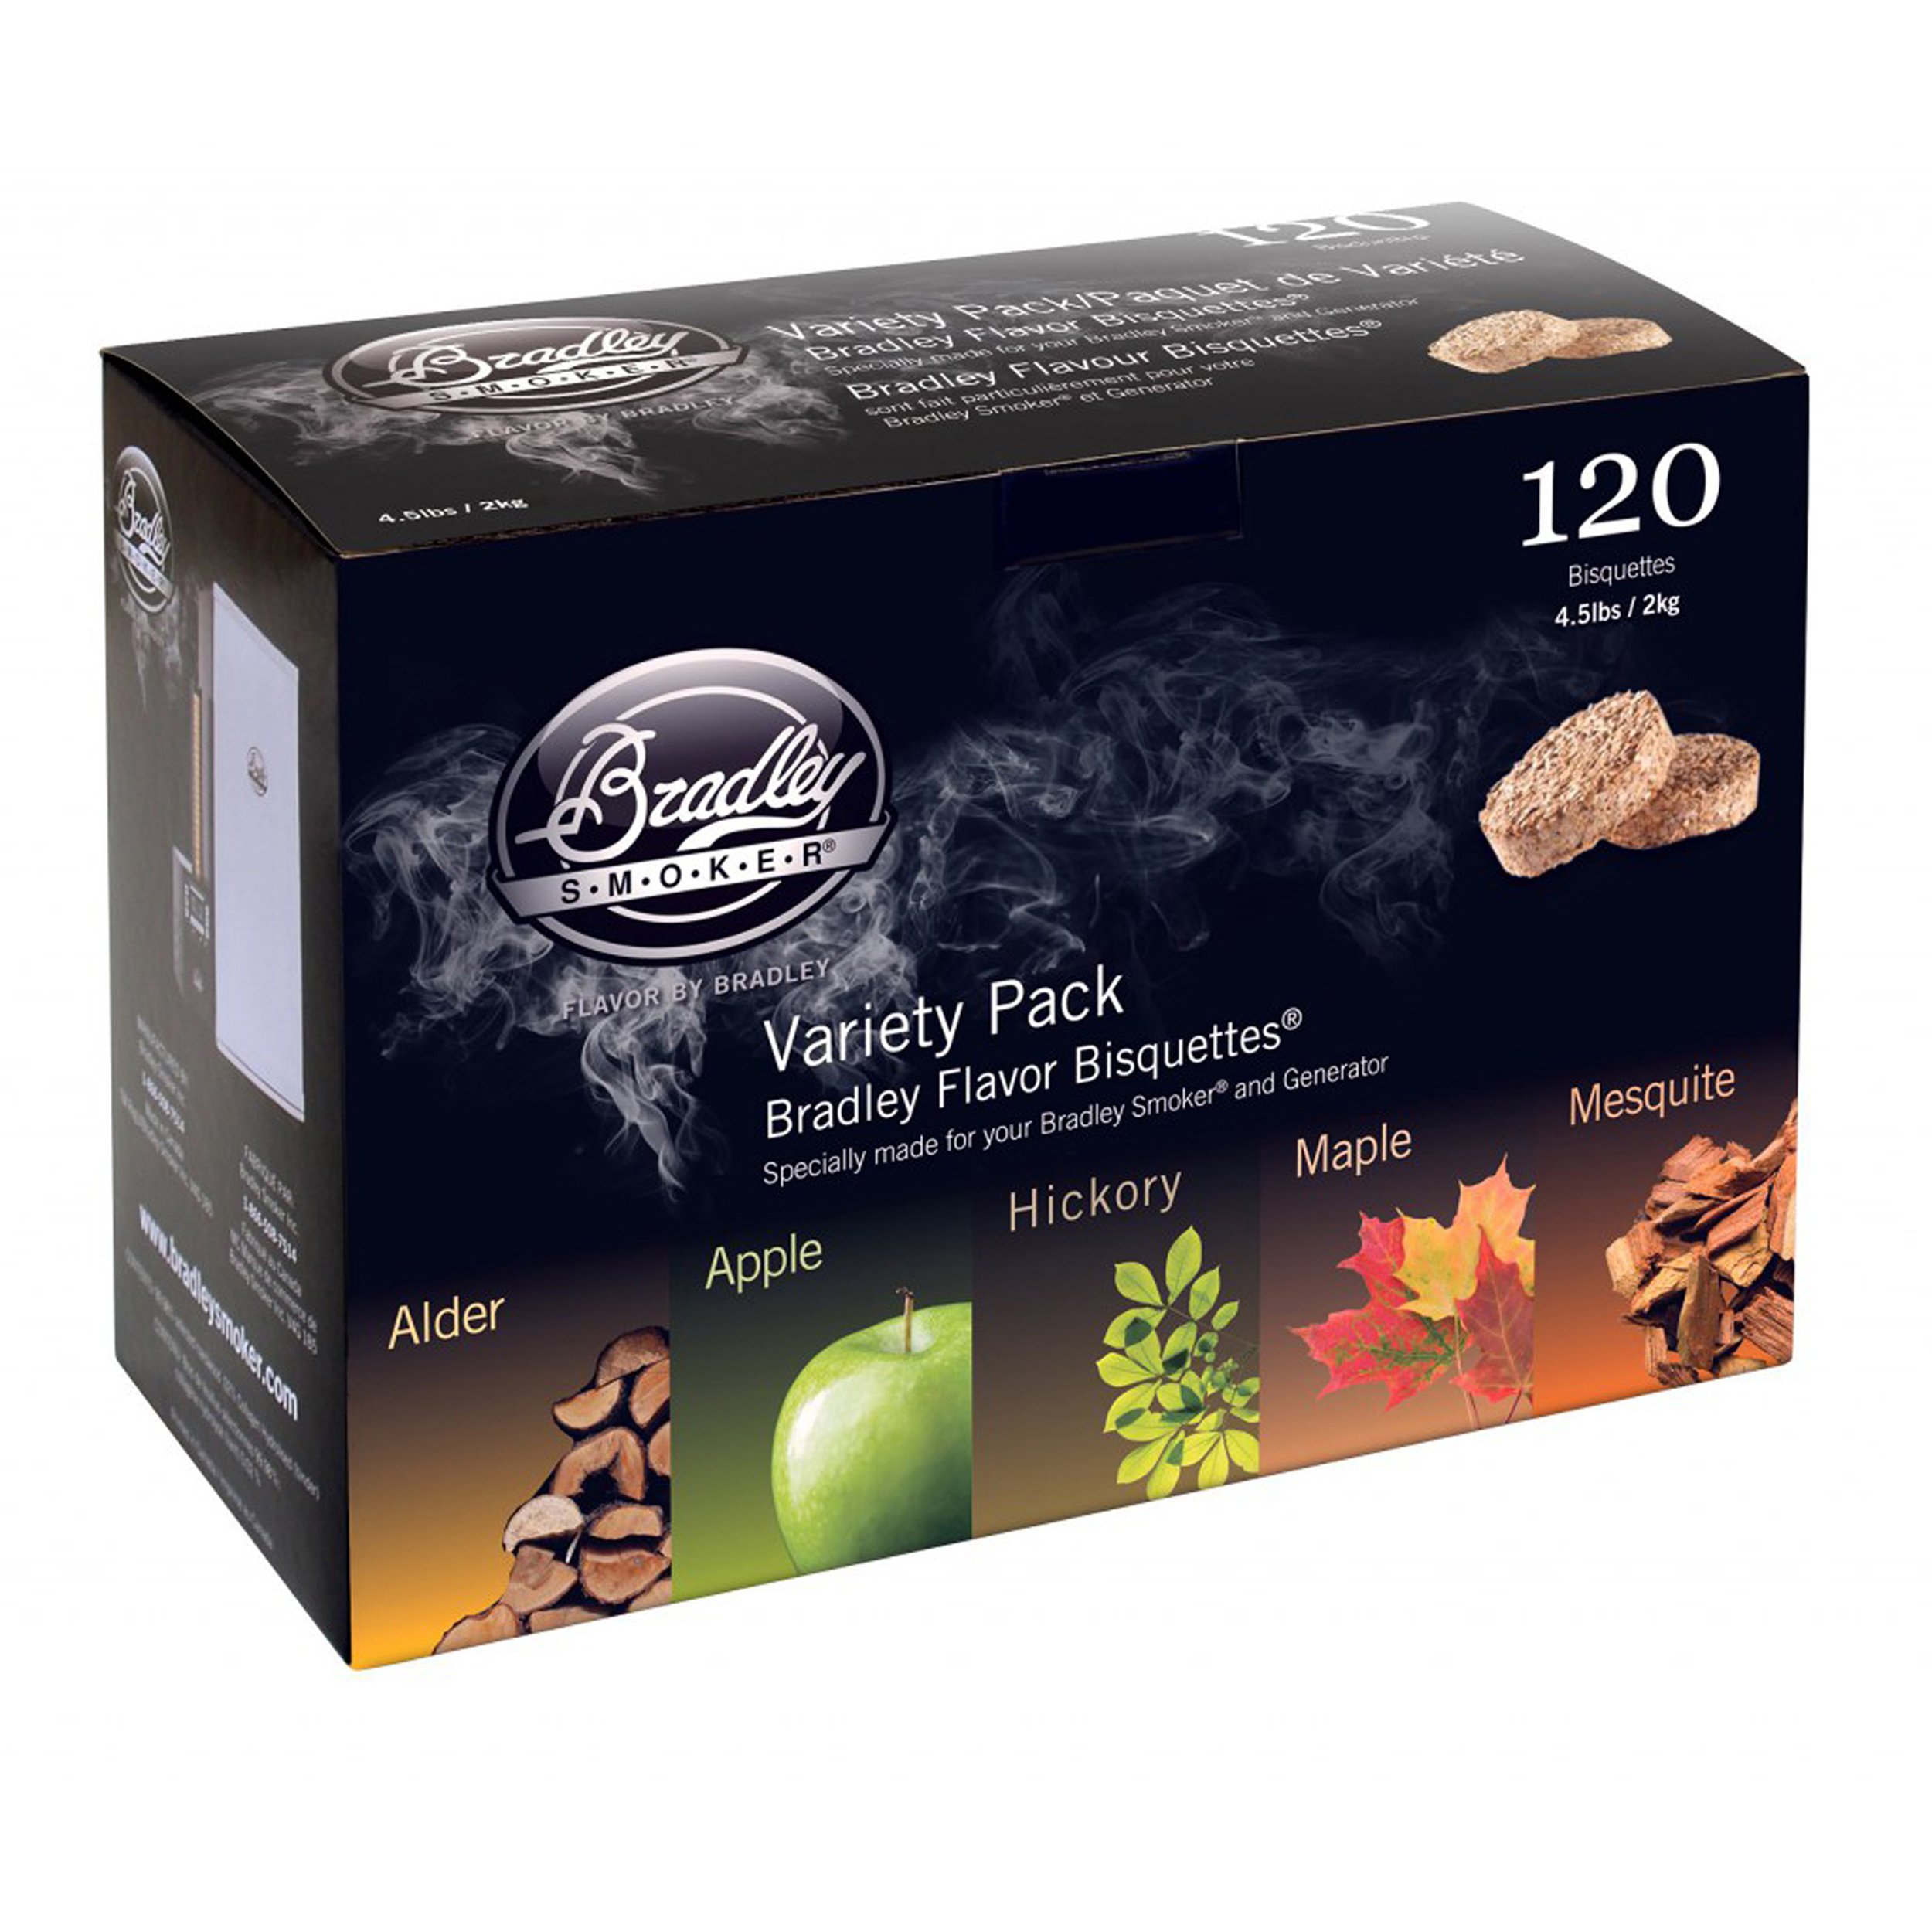 Bradley Smokers Smoker Bisquettes 5 Flavor Variety (120 Pack)